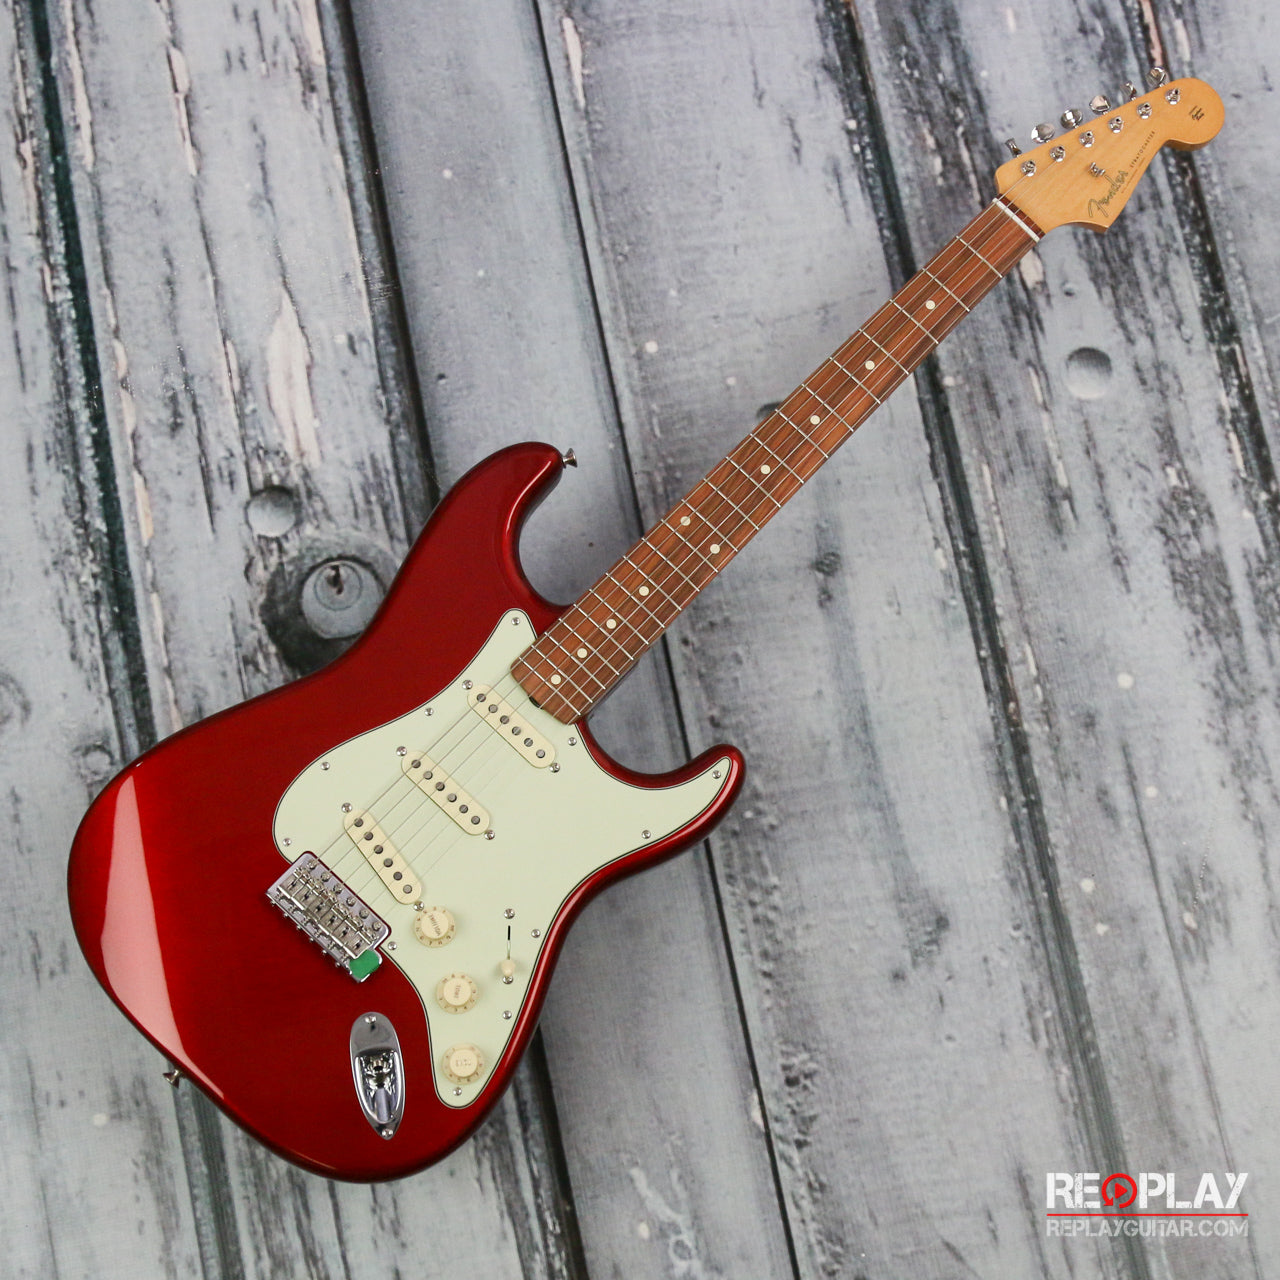 fender stratocaster candy apple red for sale replay guitar. Black Bedroom Furniture Sets. Home Design Ideas